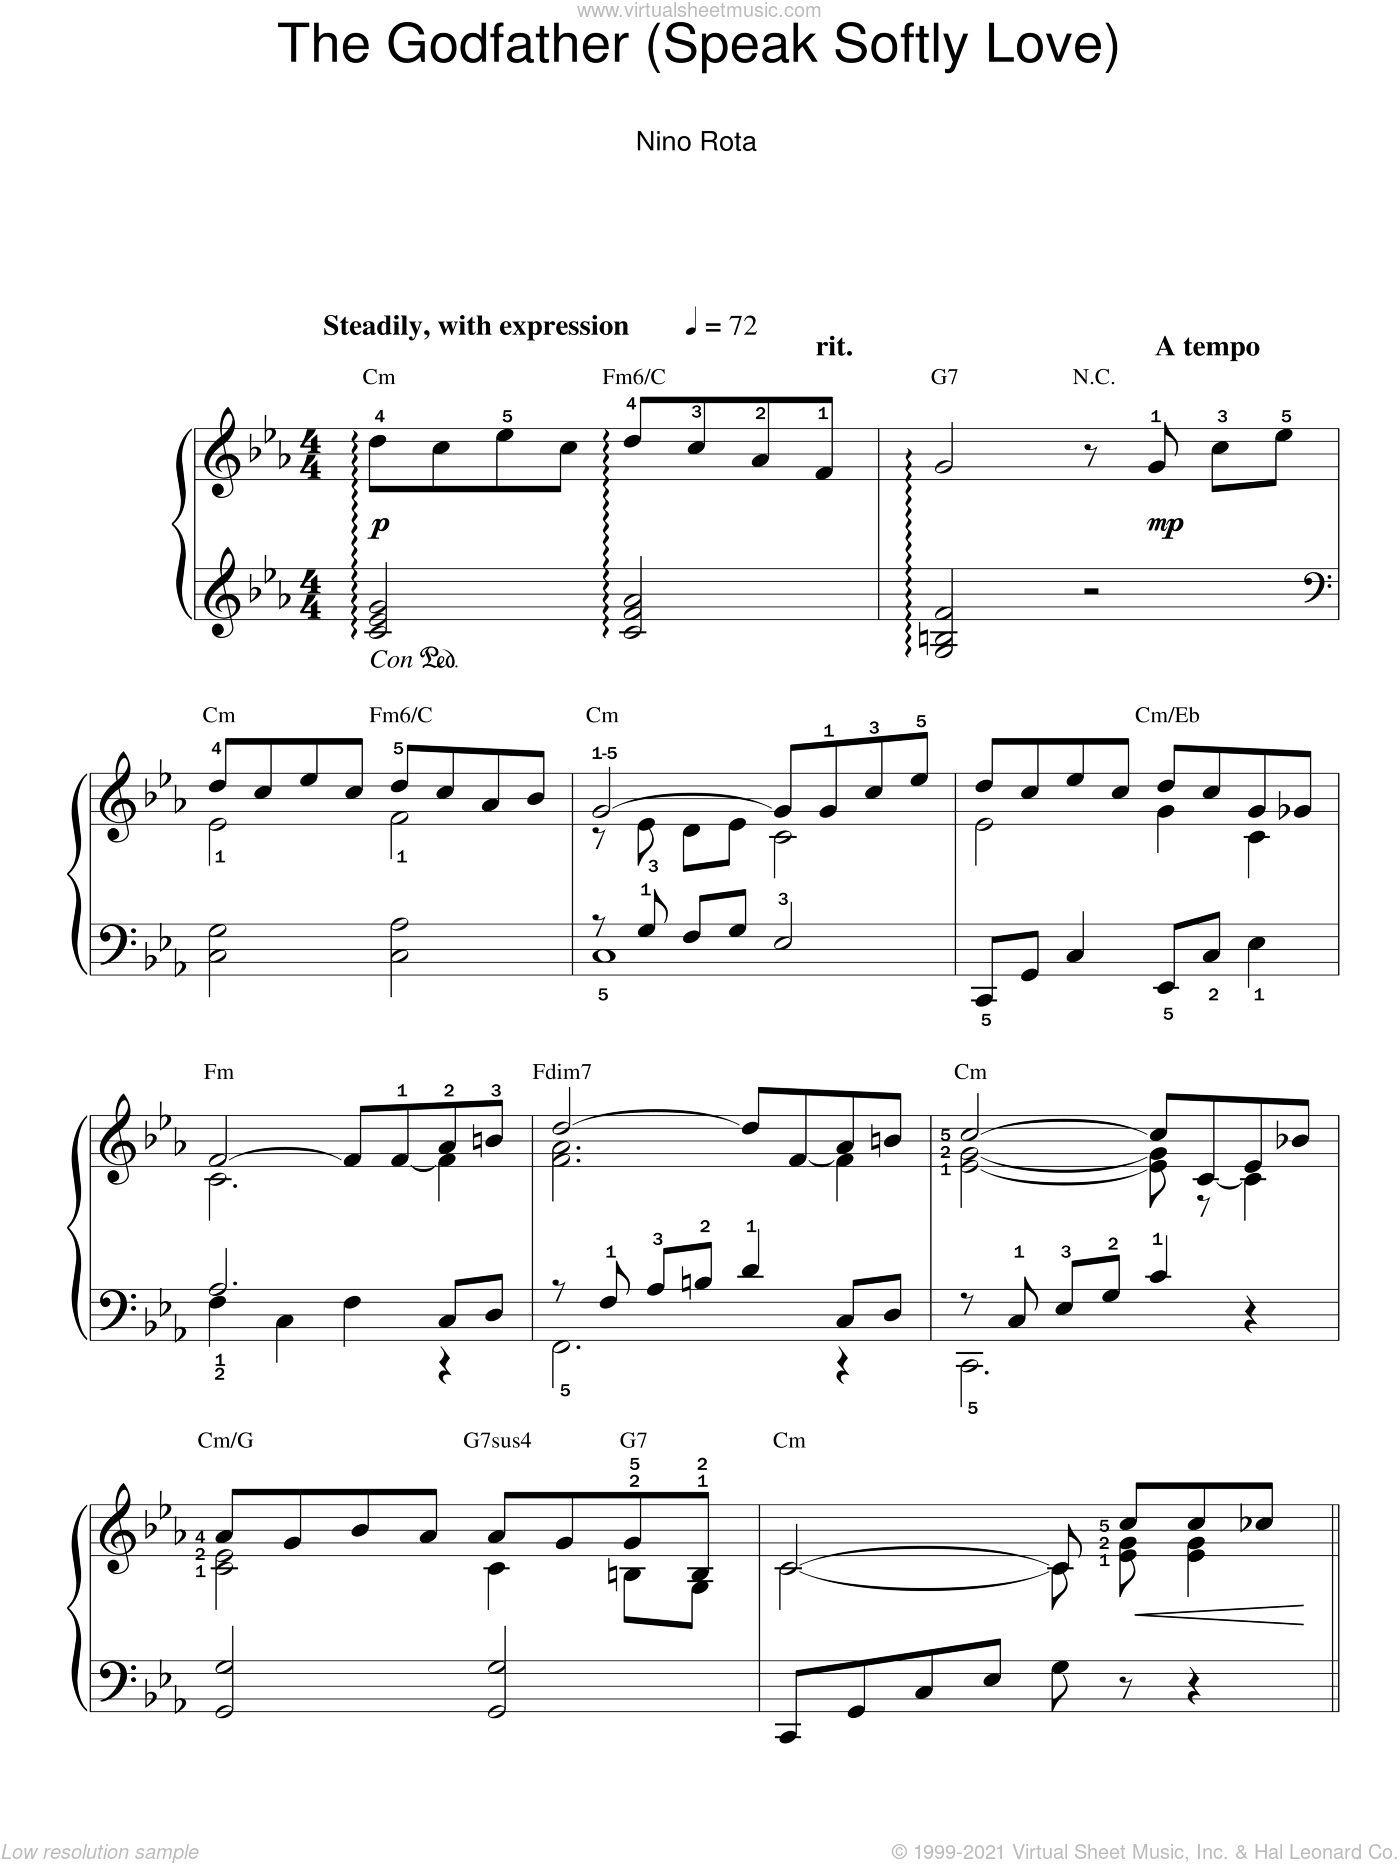 Love Theme from The Godfather sheet music for piano solo by Nino Rota, easy piano. Score Image Preview.